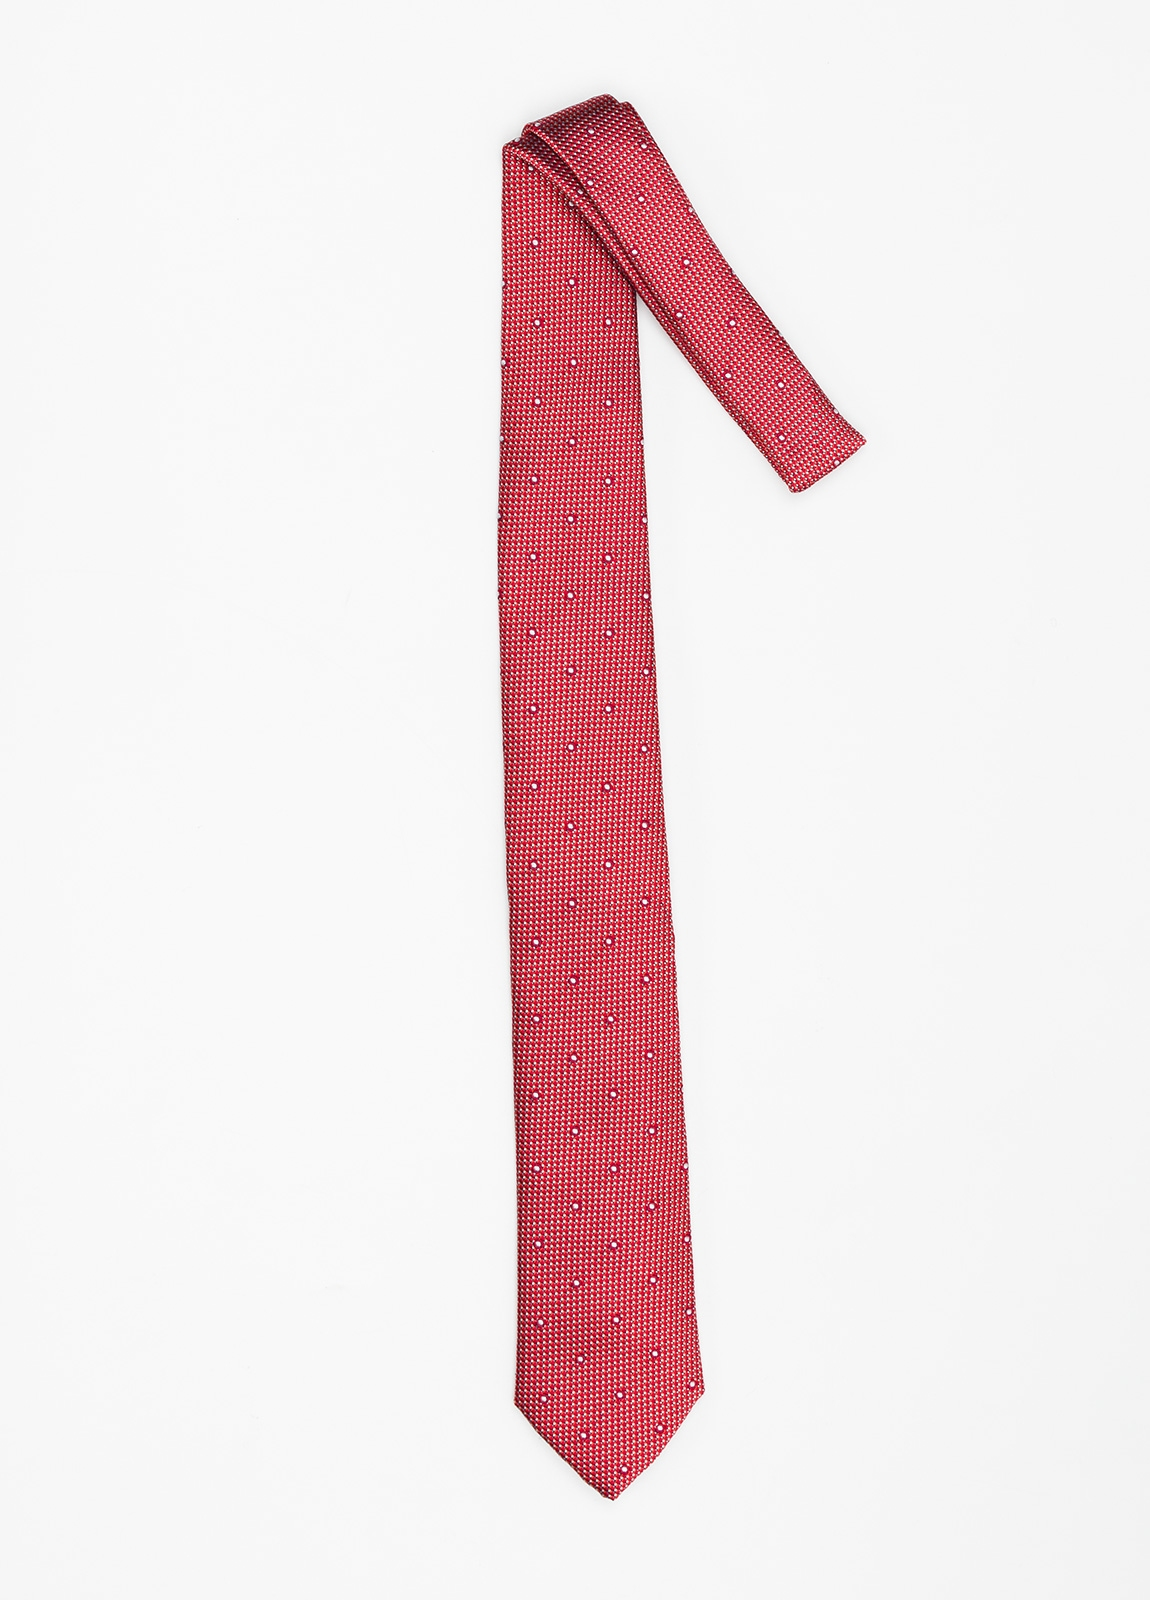 Corbata Formal Wear micro textura topito color rojo. Pala 7,5 cm. 100% Seda. - Ítem1